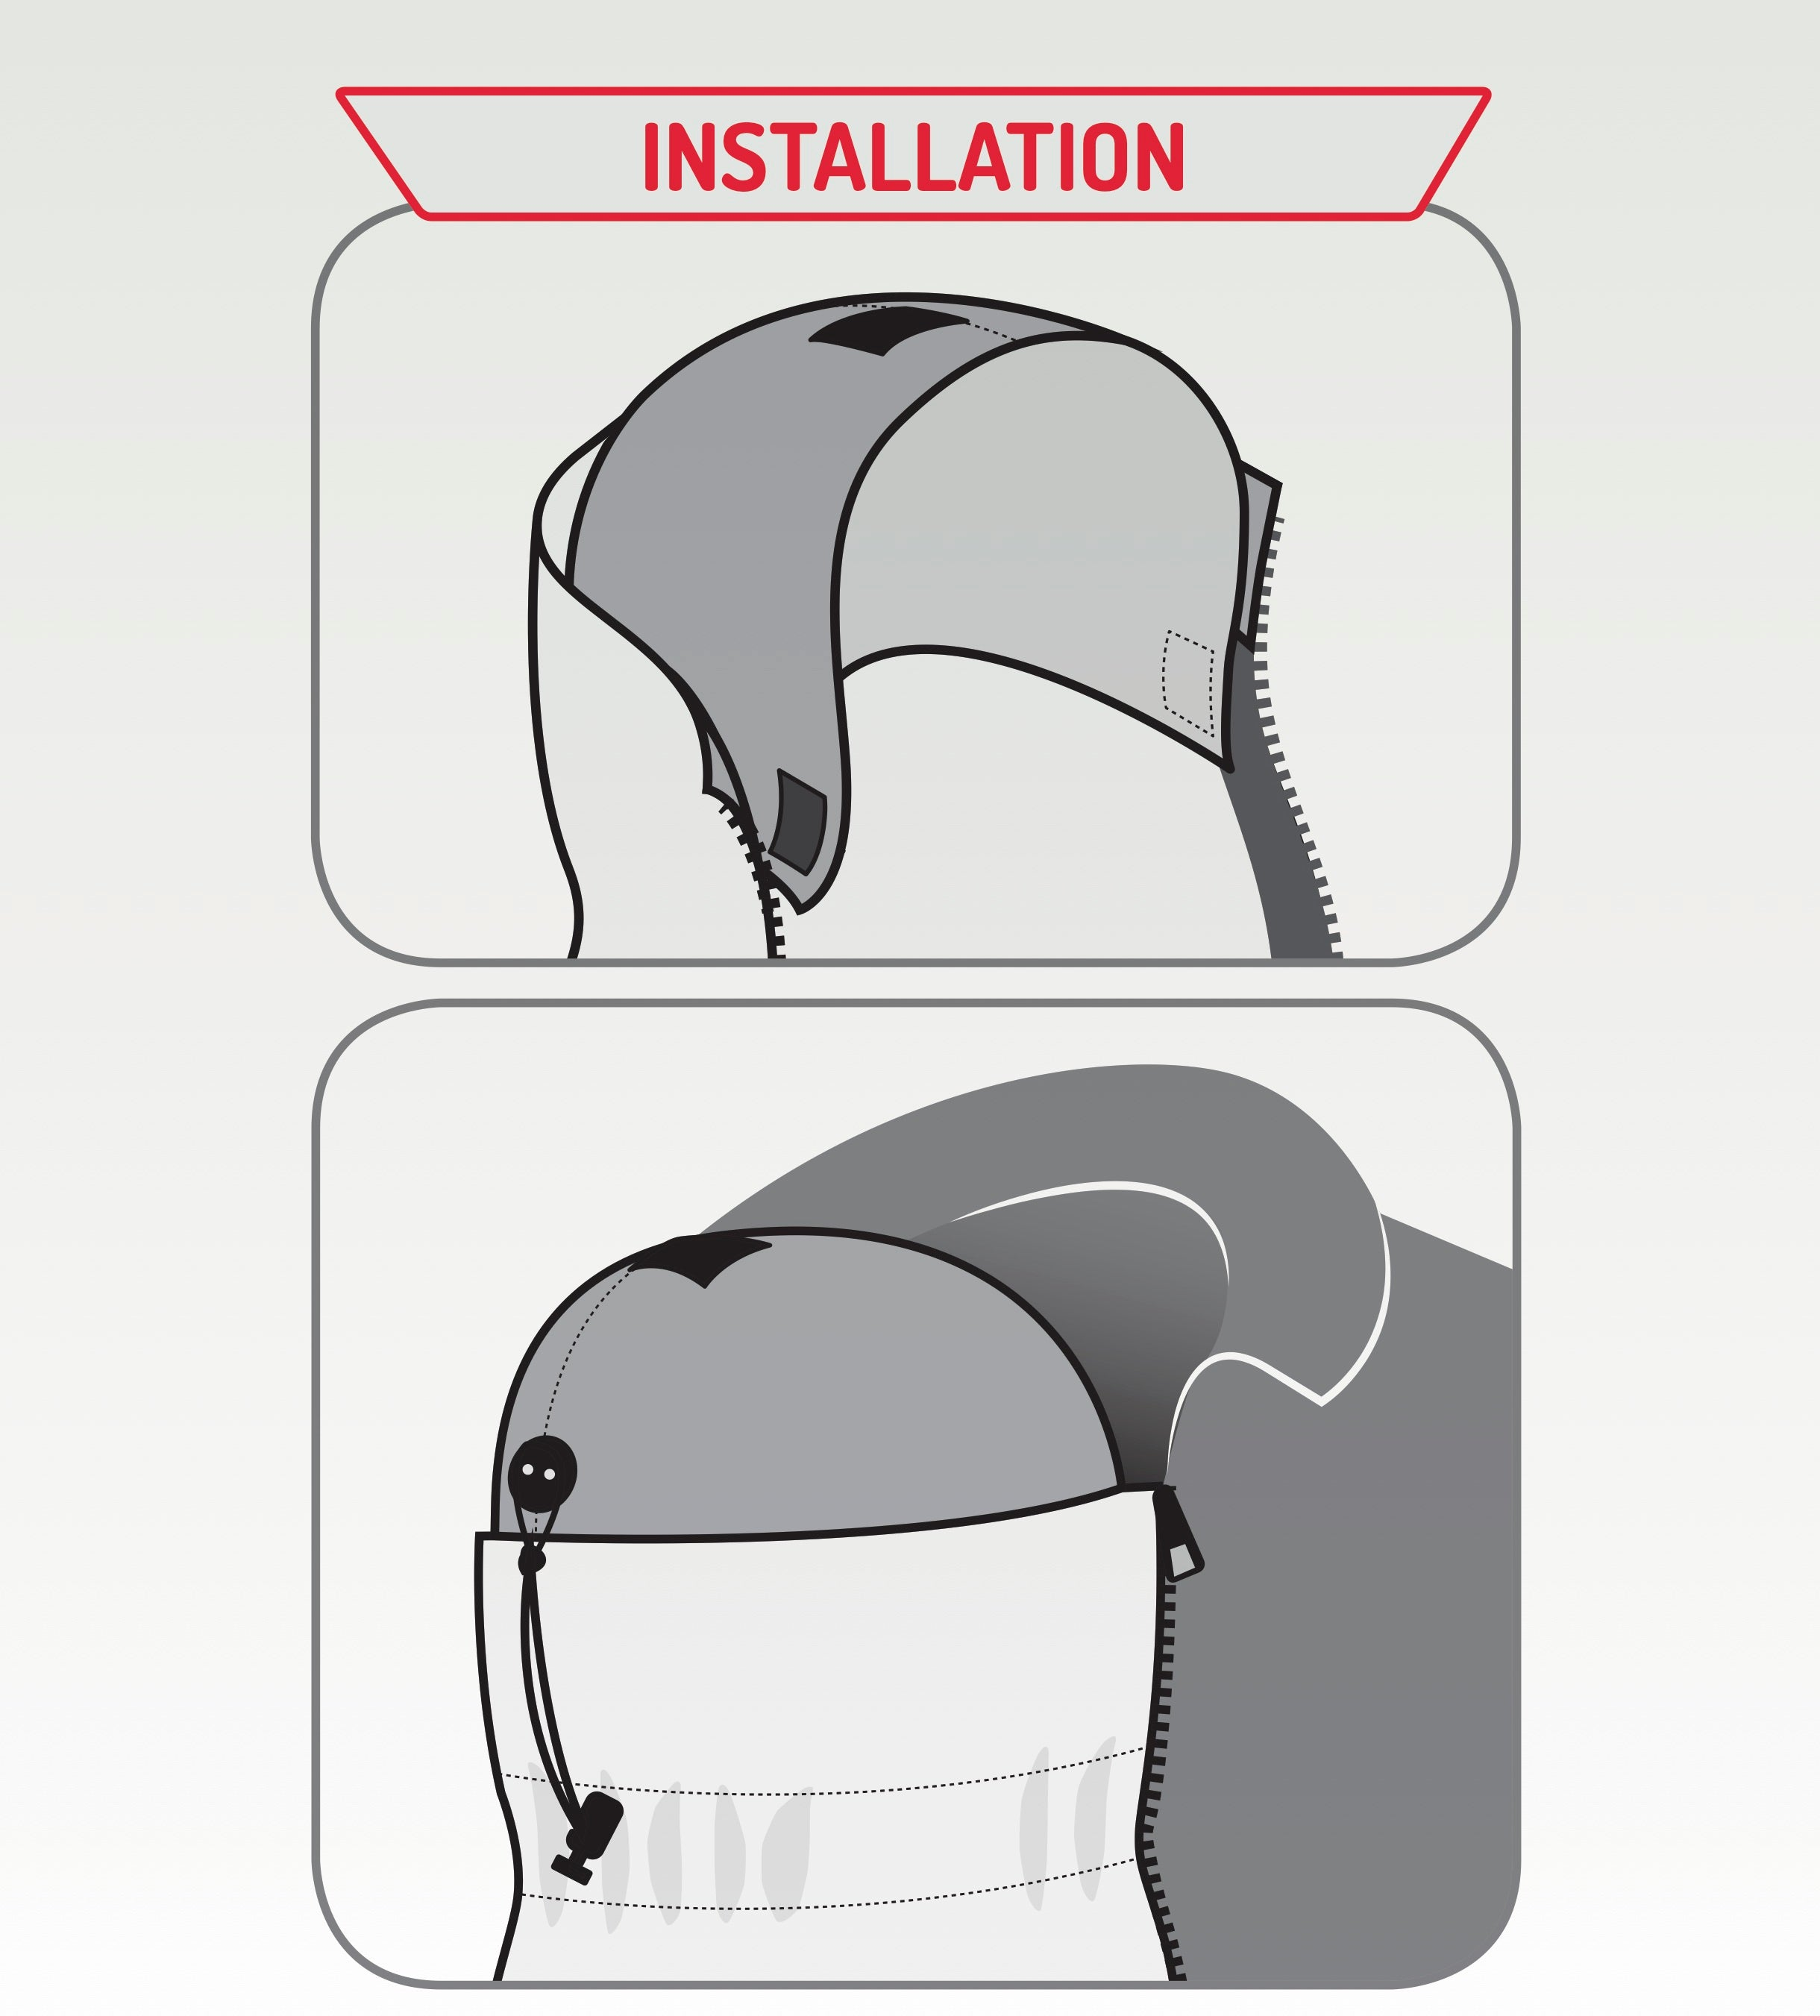 Baby Hood Installation Guide